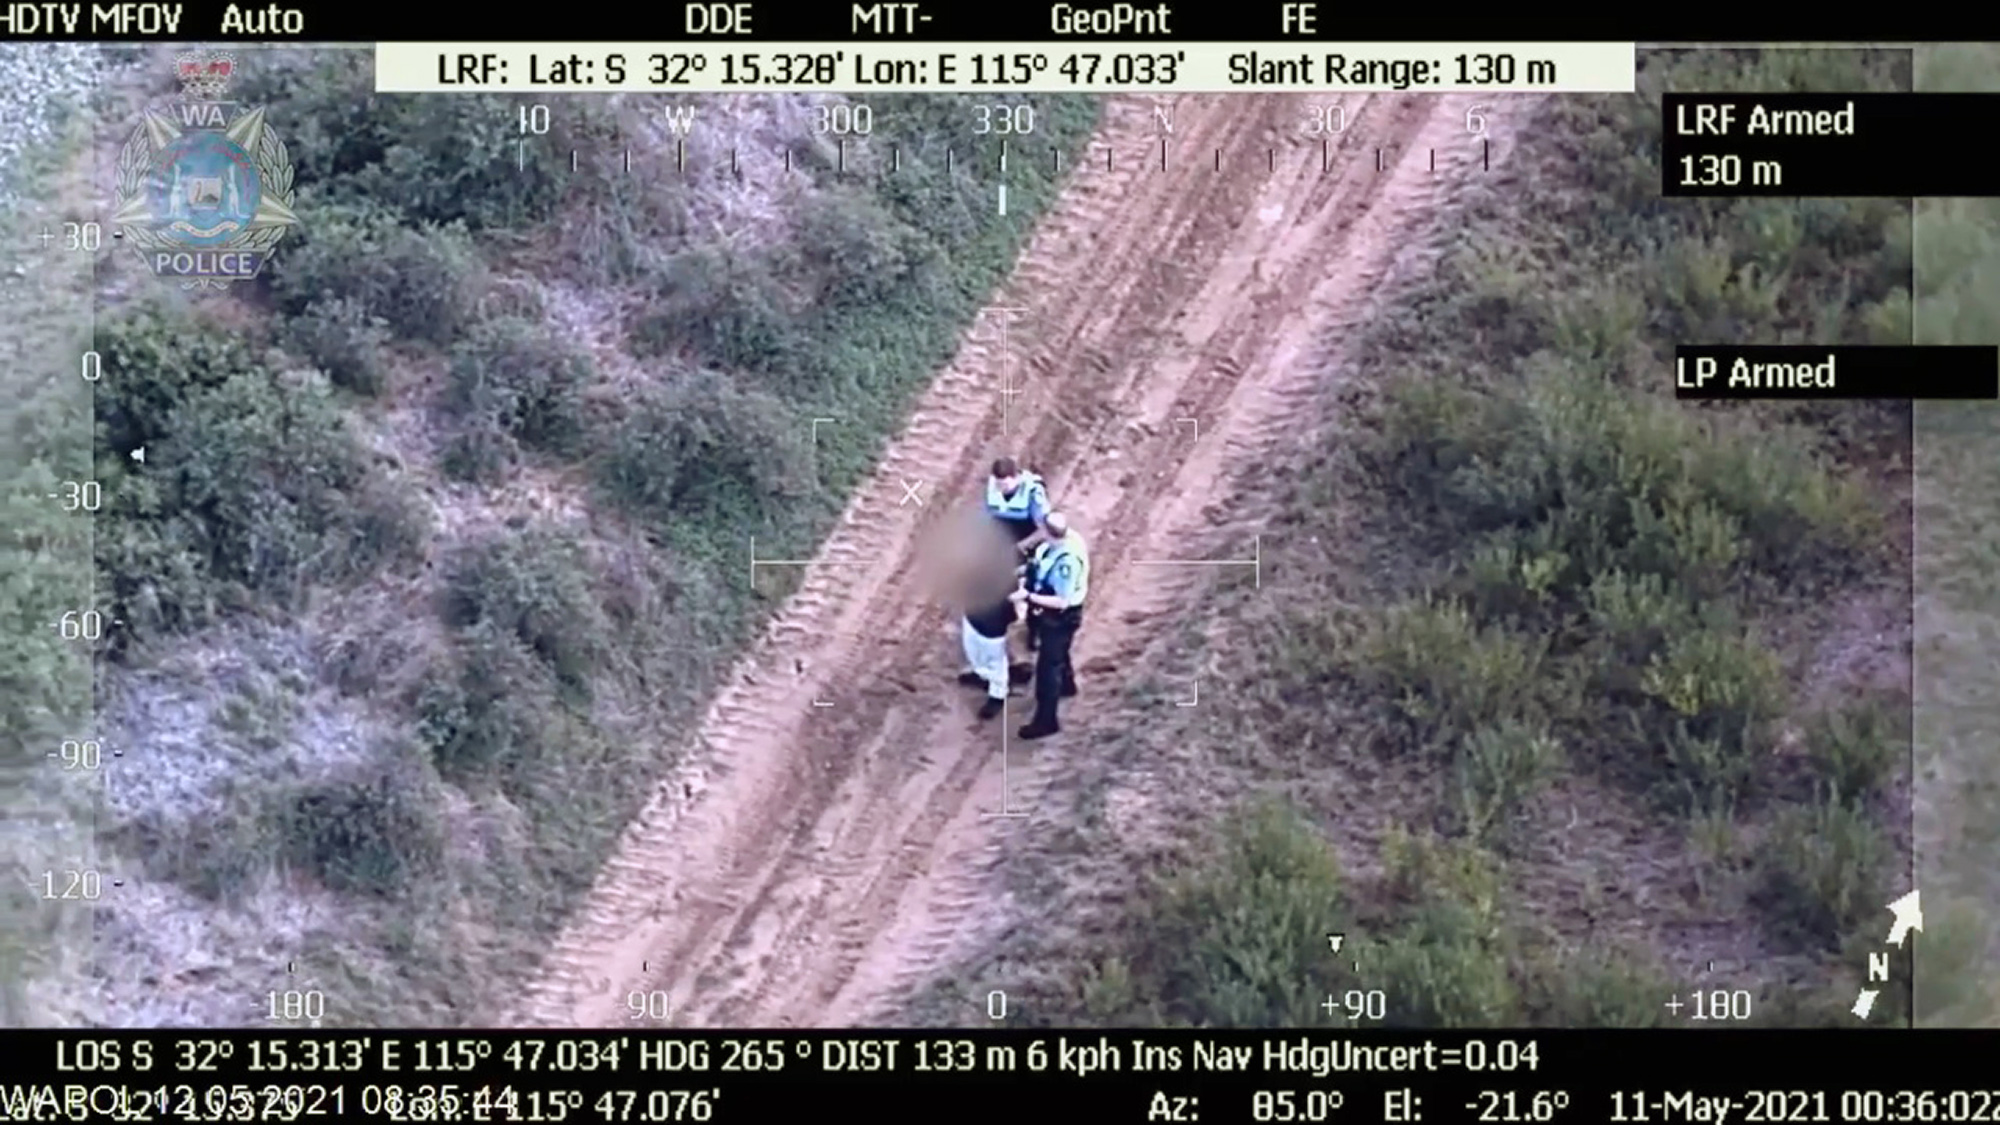 <p>A suspect was arrested after a police chase in Rockingham, Western Australia on May 12, 2021. (Western Australia Police/Zenger News)</p>